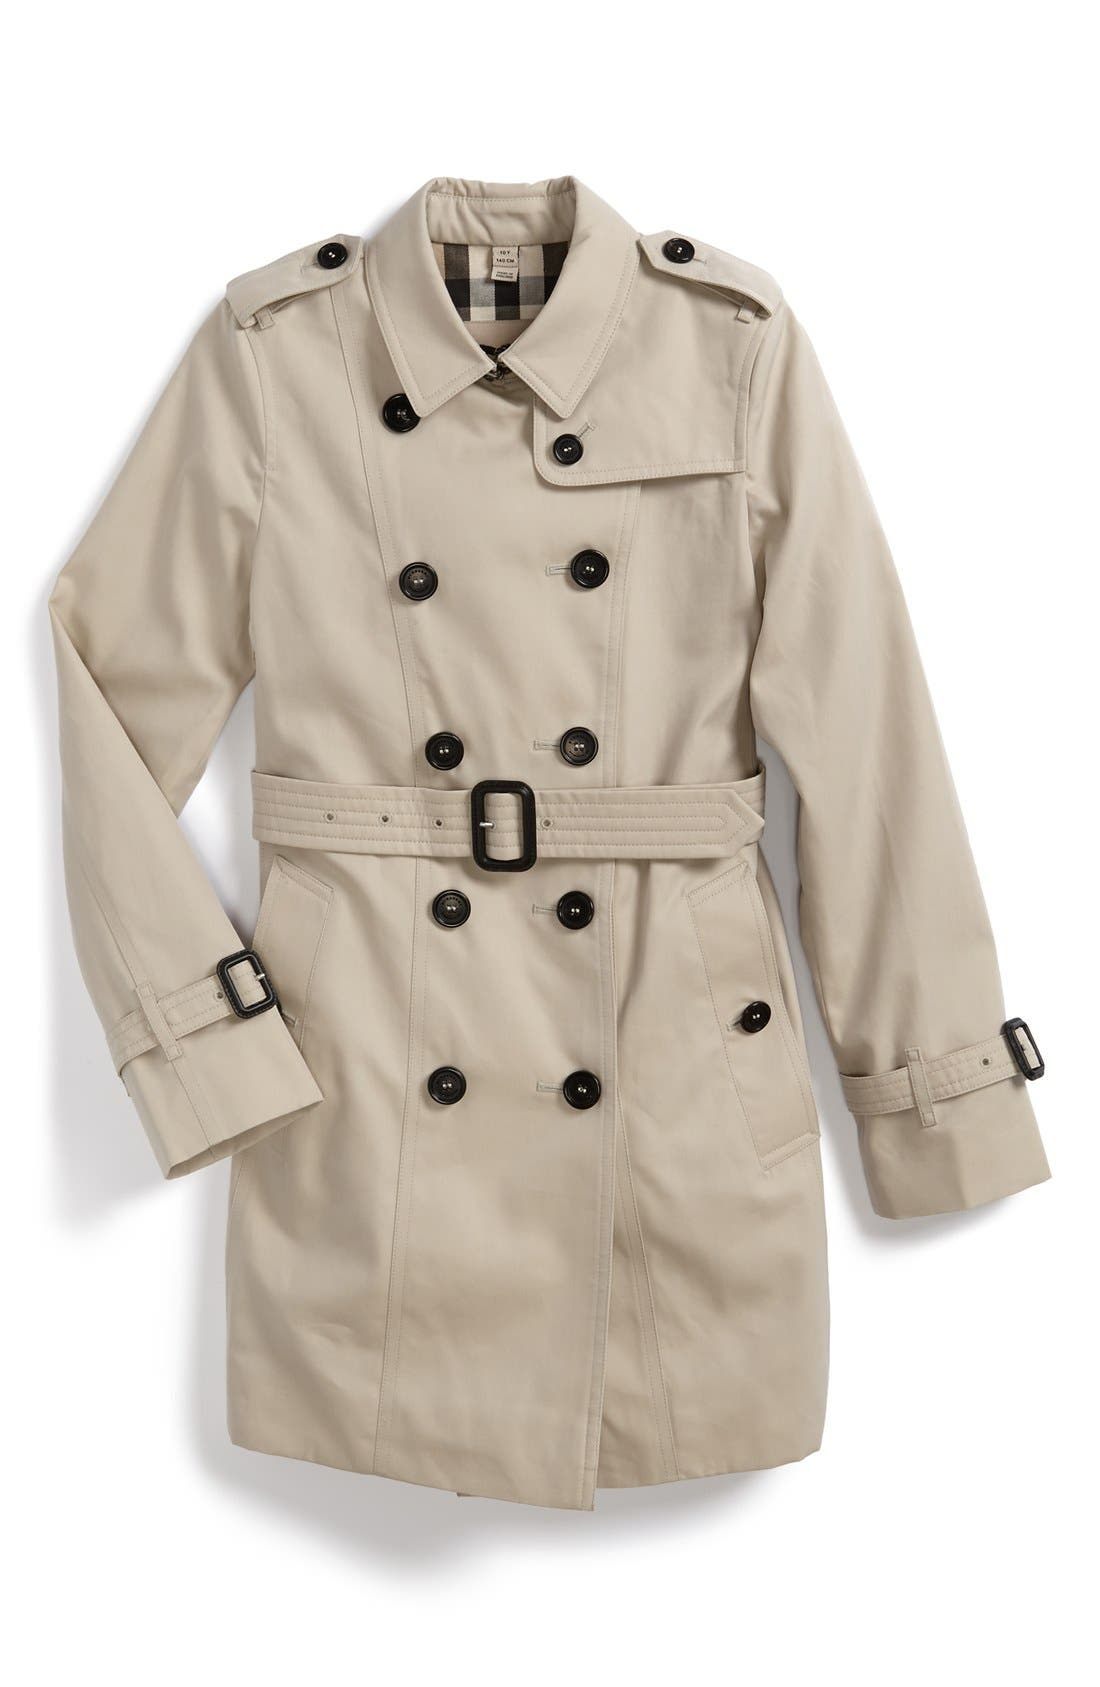 BURBERRY, 'Sandringham' Double Breasted Trench Coat, Main thumbnail 1, color, 250